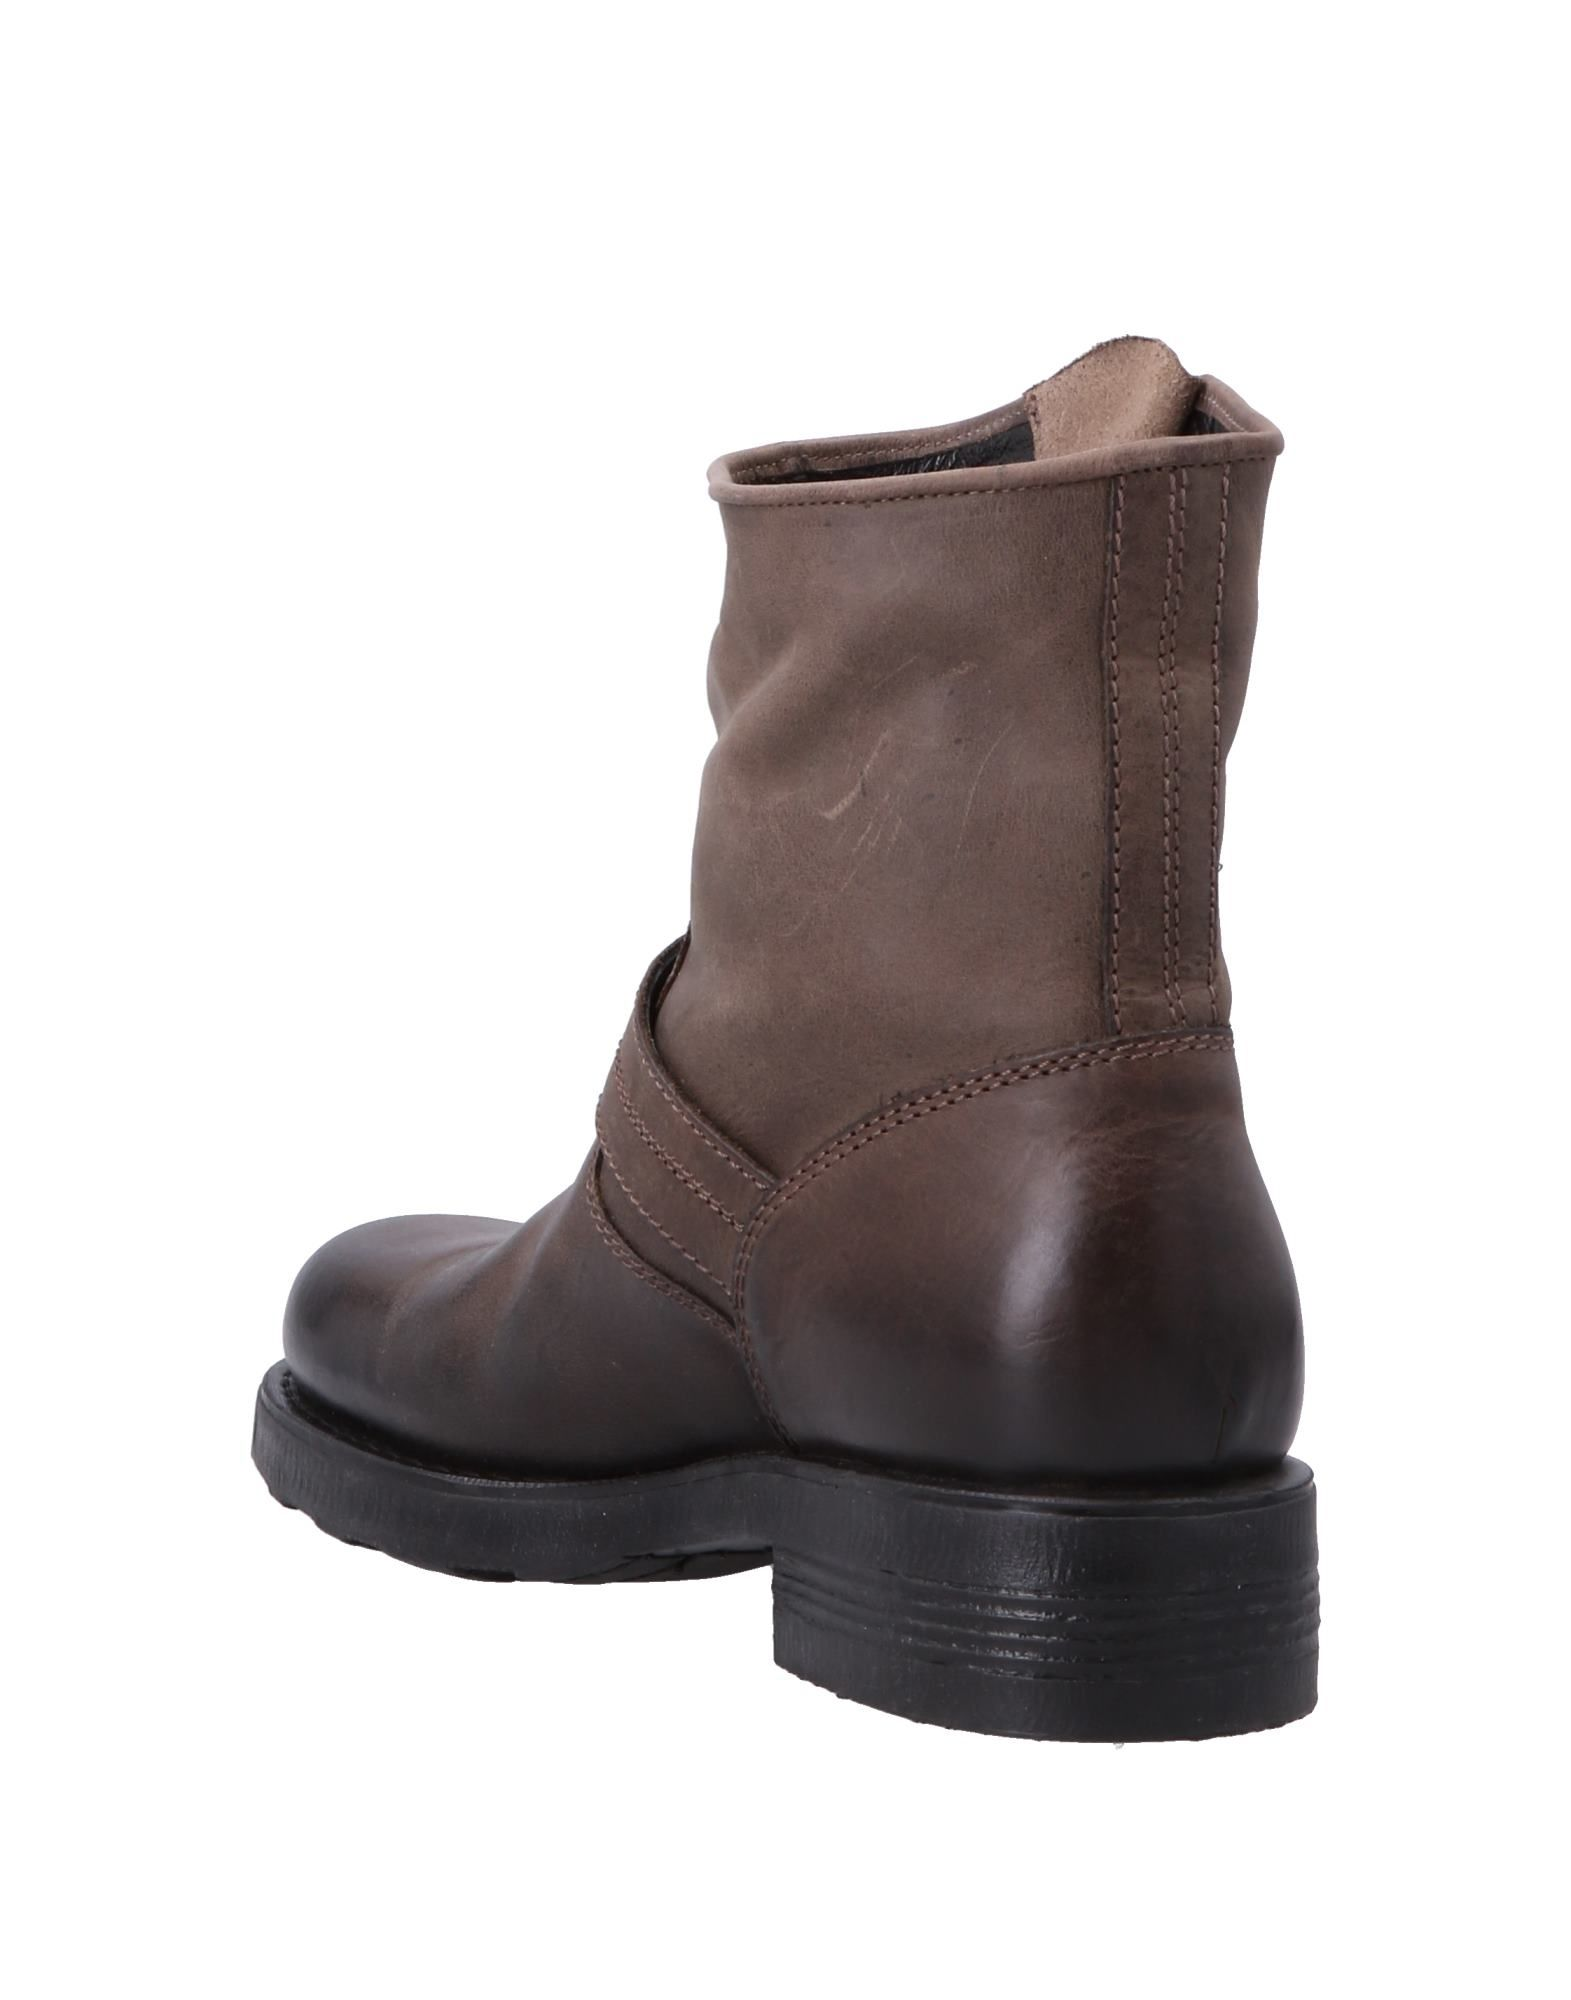 11063678PC O.X.S. Stiefelette Damen  11063678PC  0c8604